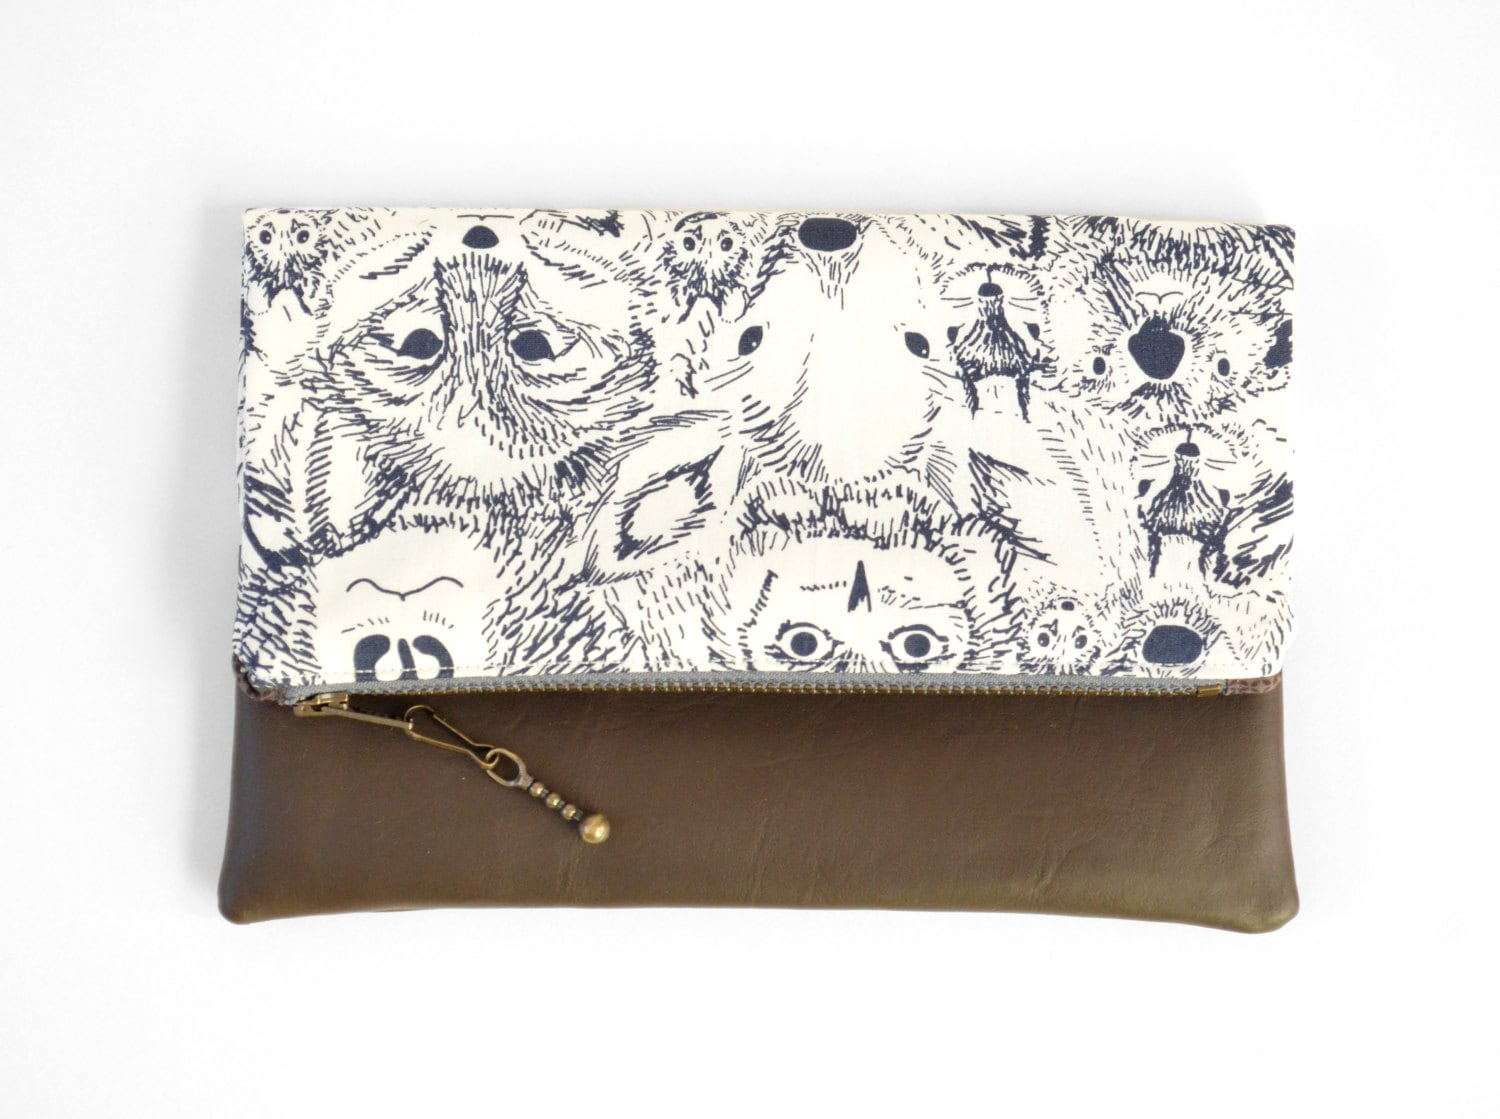 Animal Print Fold Over Clutch, Leather Accent Clutch, Owl Print Clutch, Sarah Watson Fabric - sewandtellhandmade